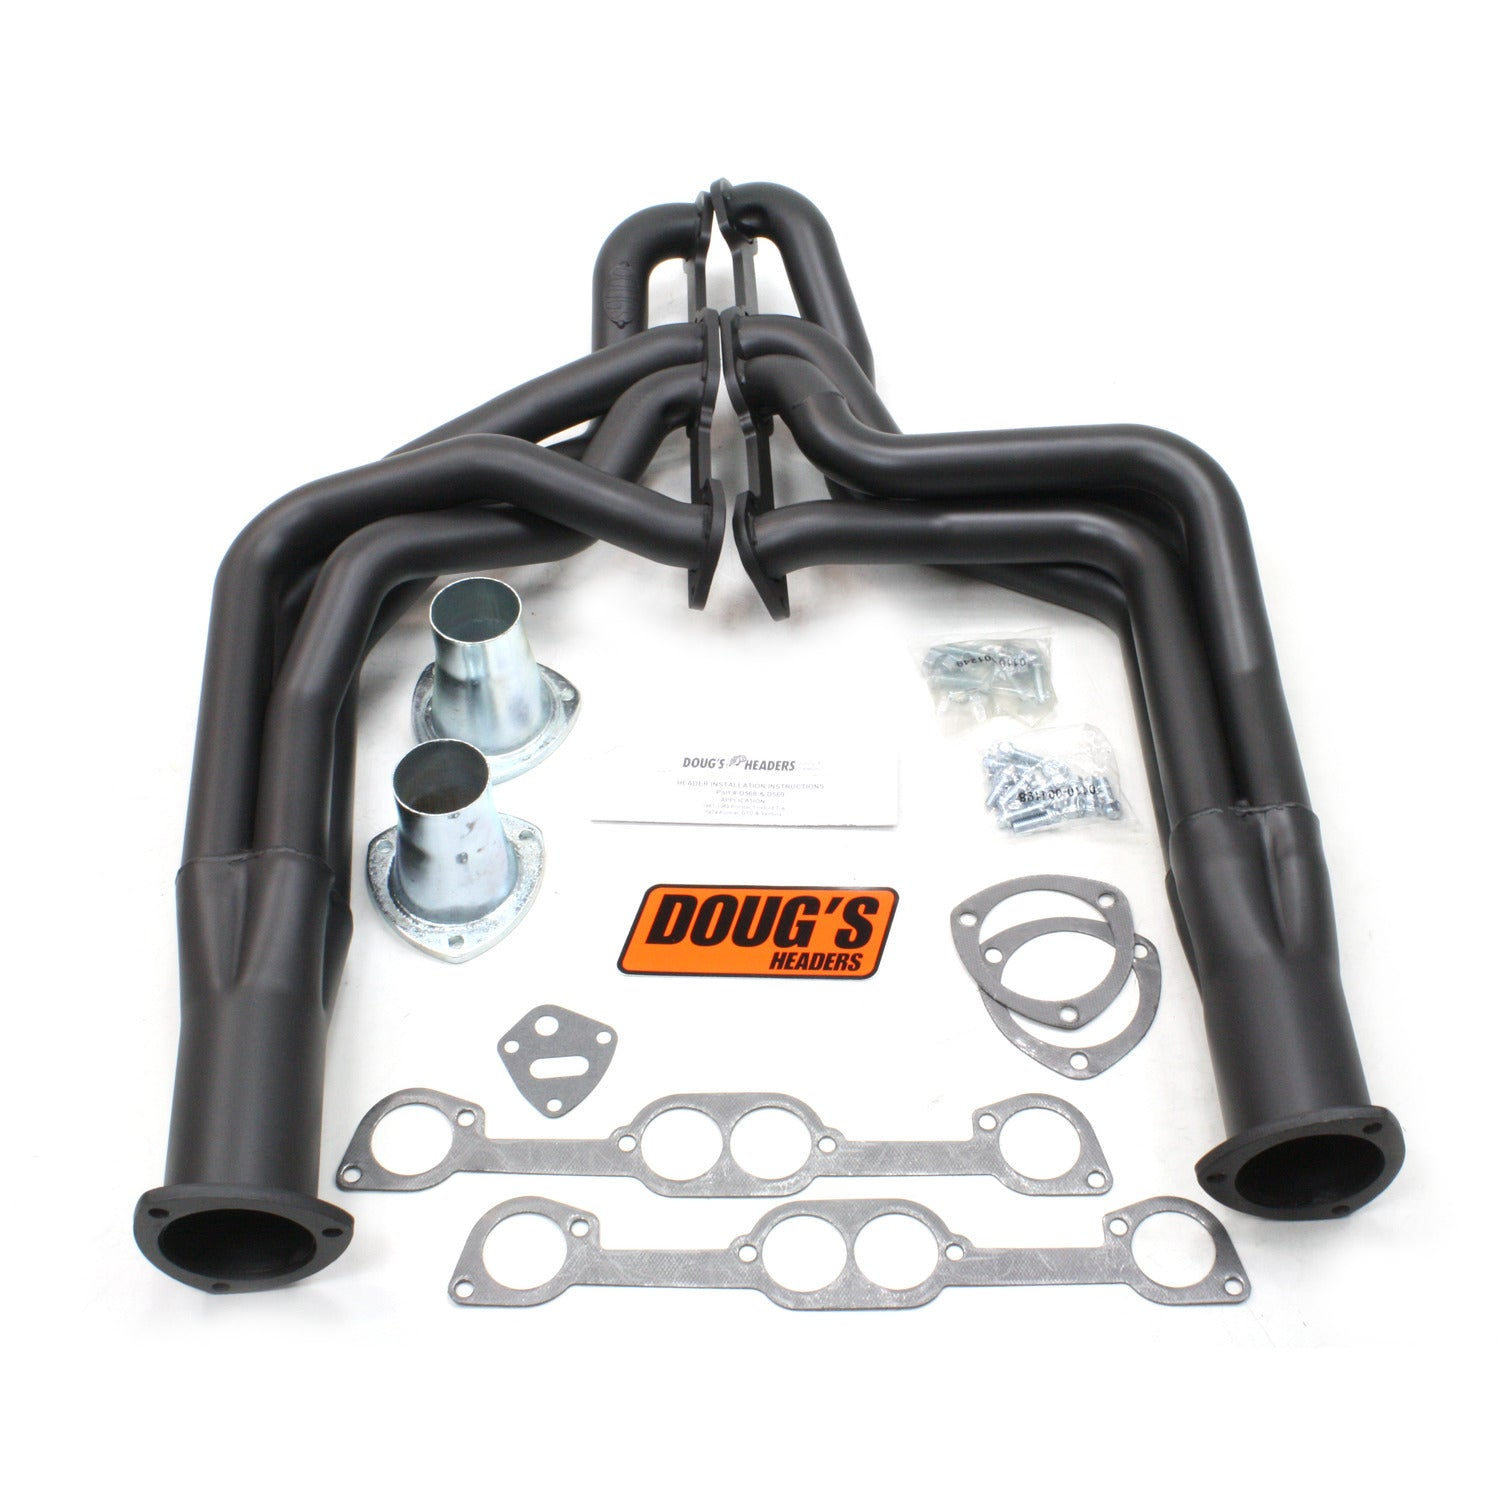 "Doug's Headers D568-B 1 7/8"" 4-Tube Full Length Header Pontiac Firebird 326-455 67-69 Hi-Temp Black Coating"